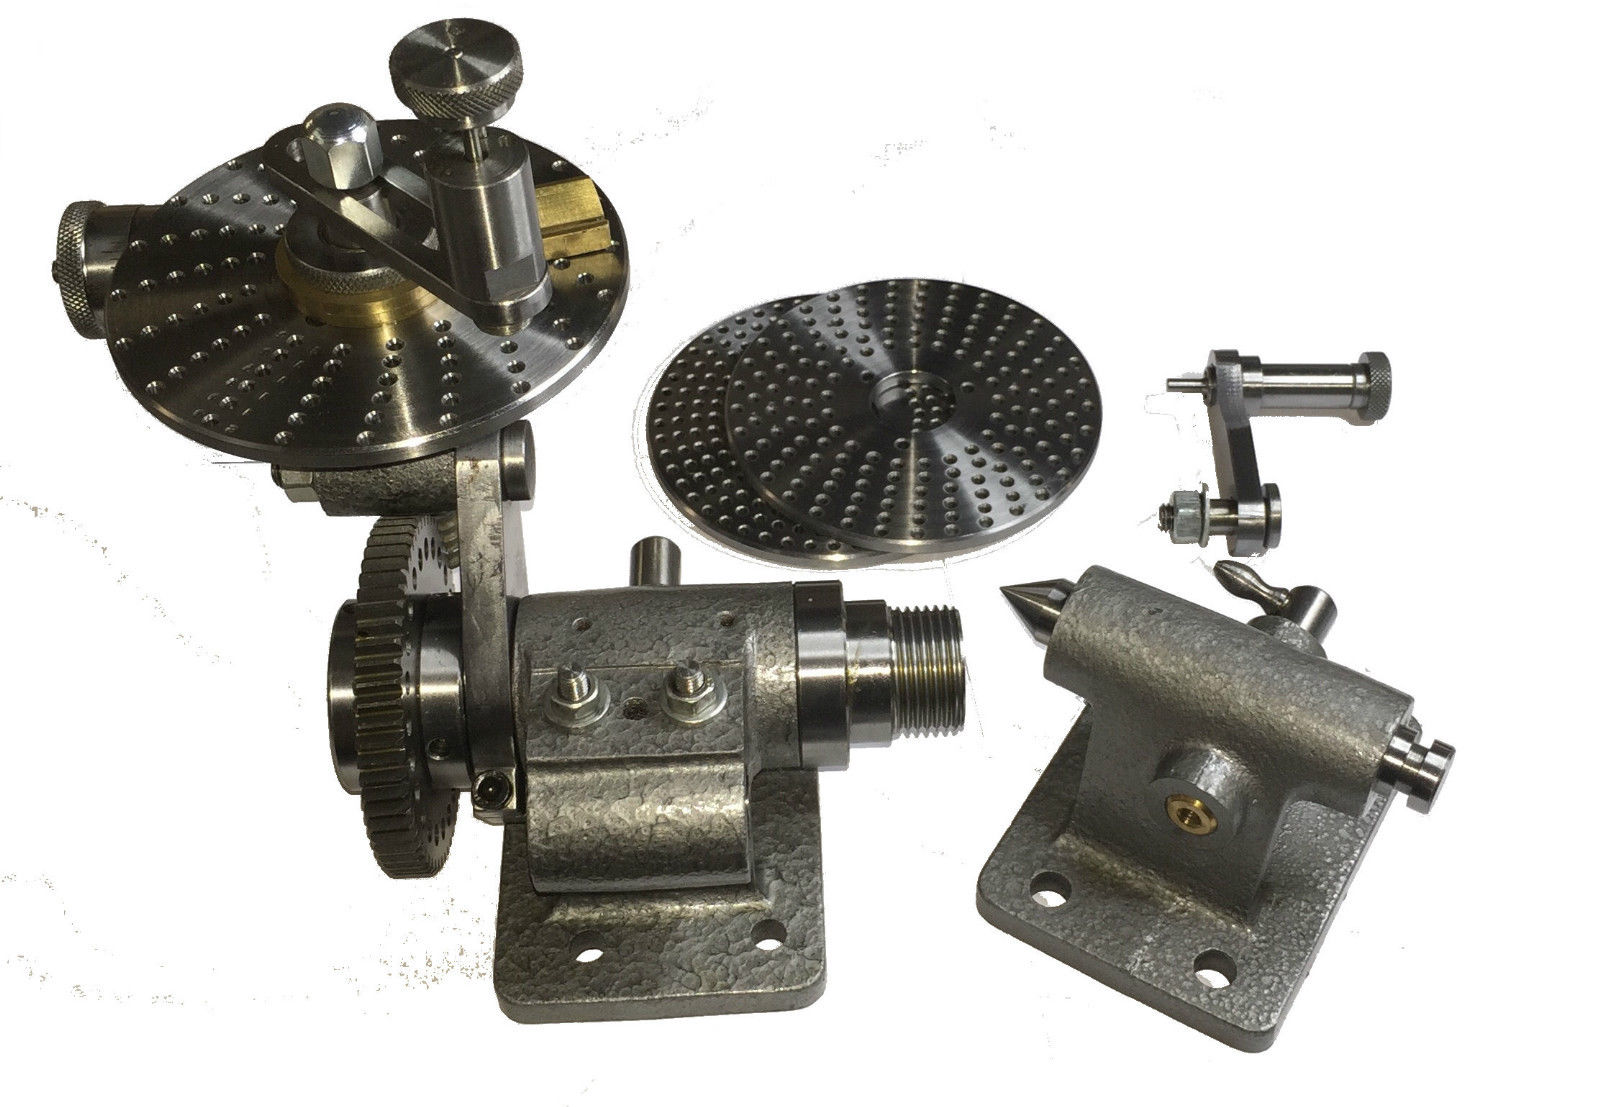 SMALL DIVIDING HEAD / INDEXING HEAD